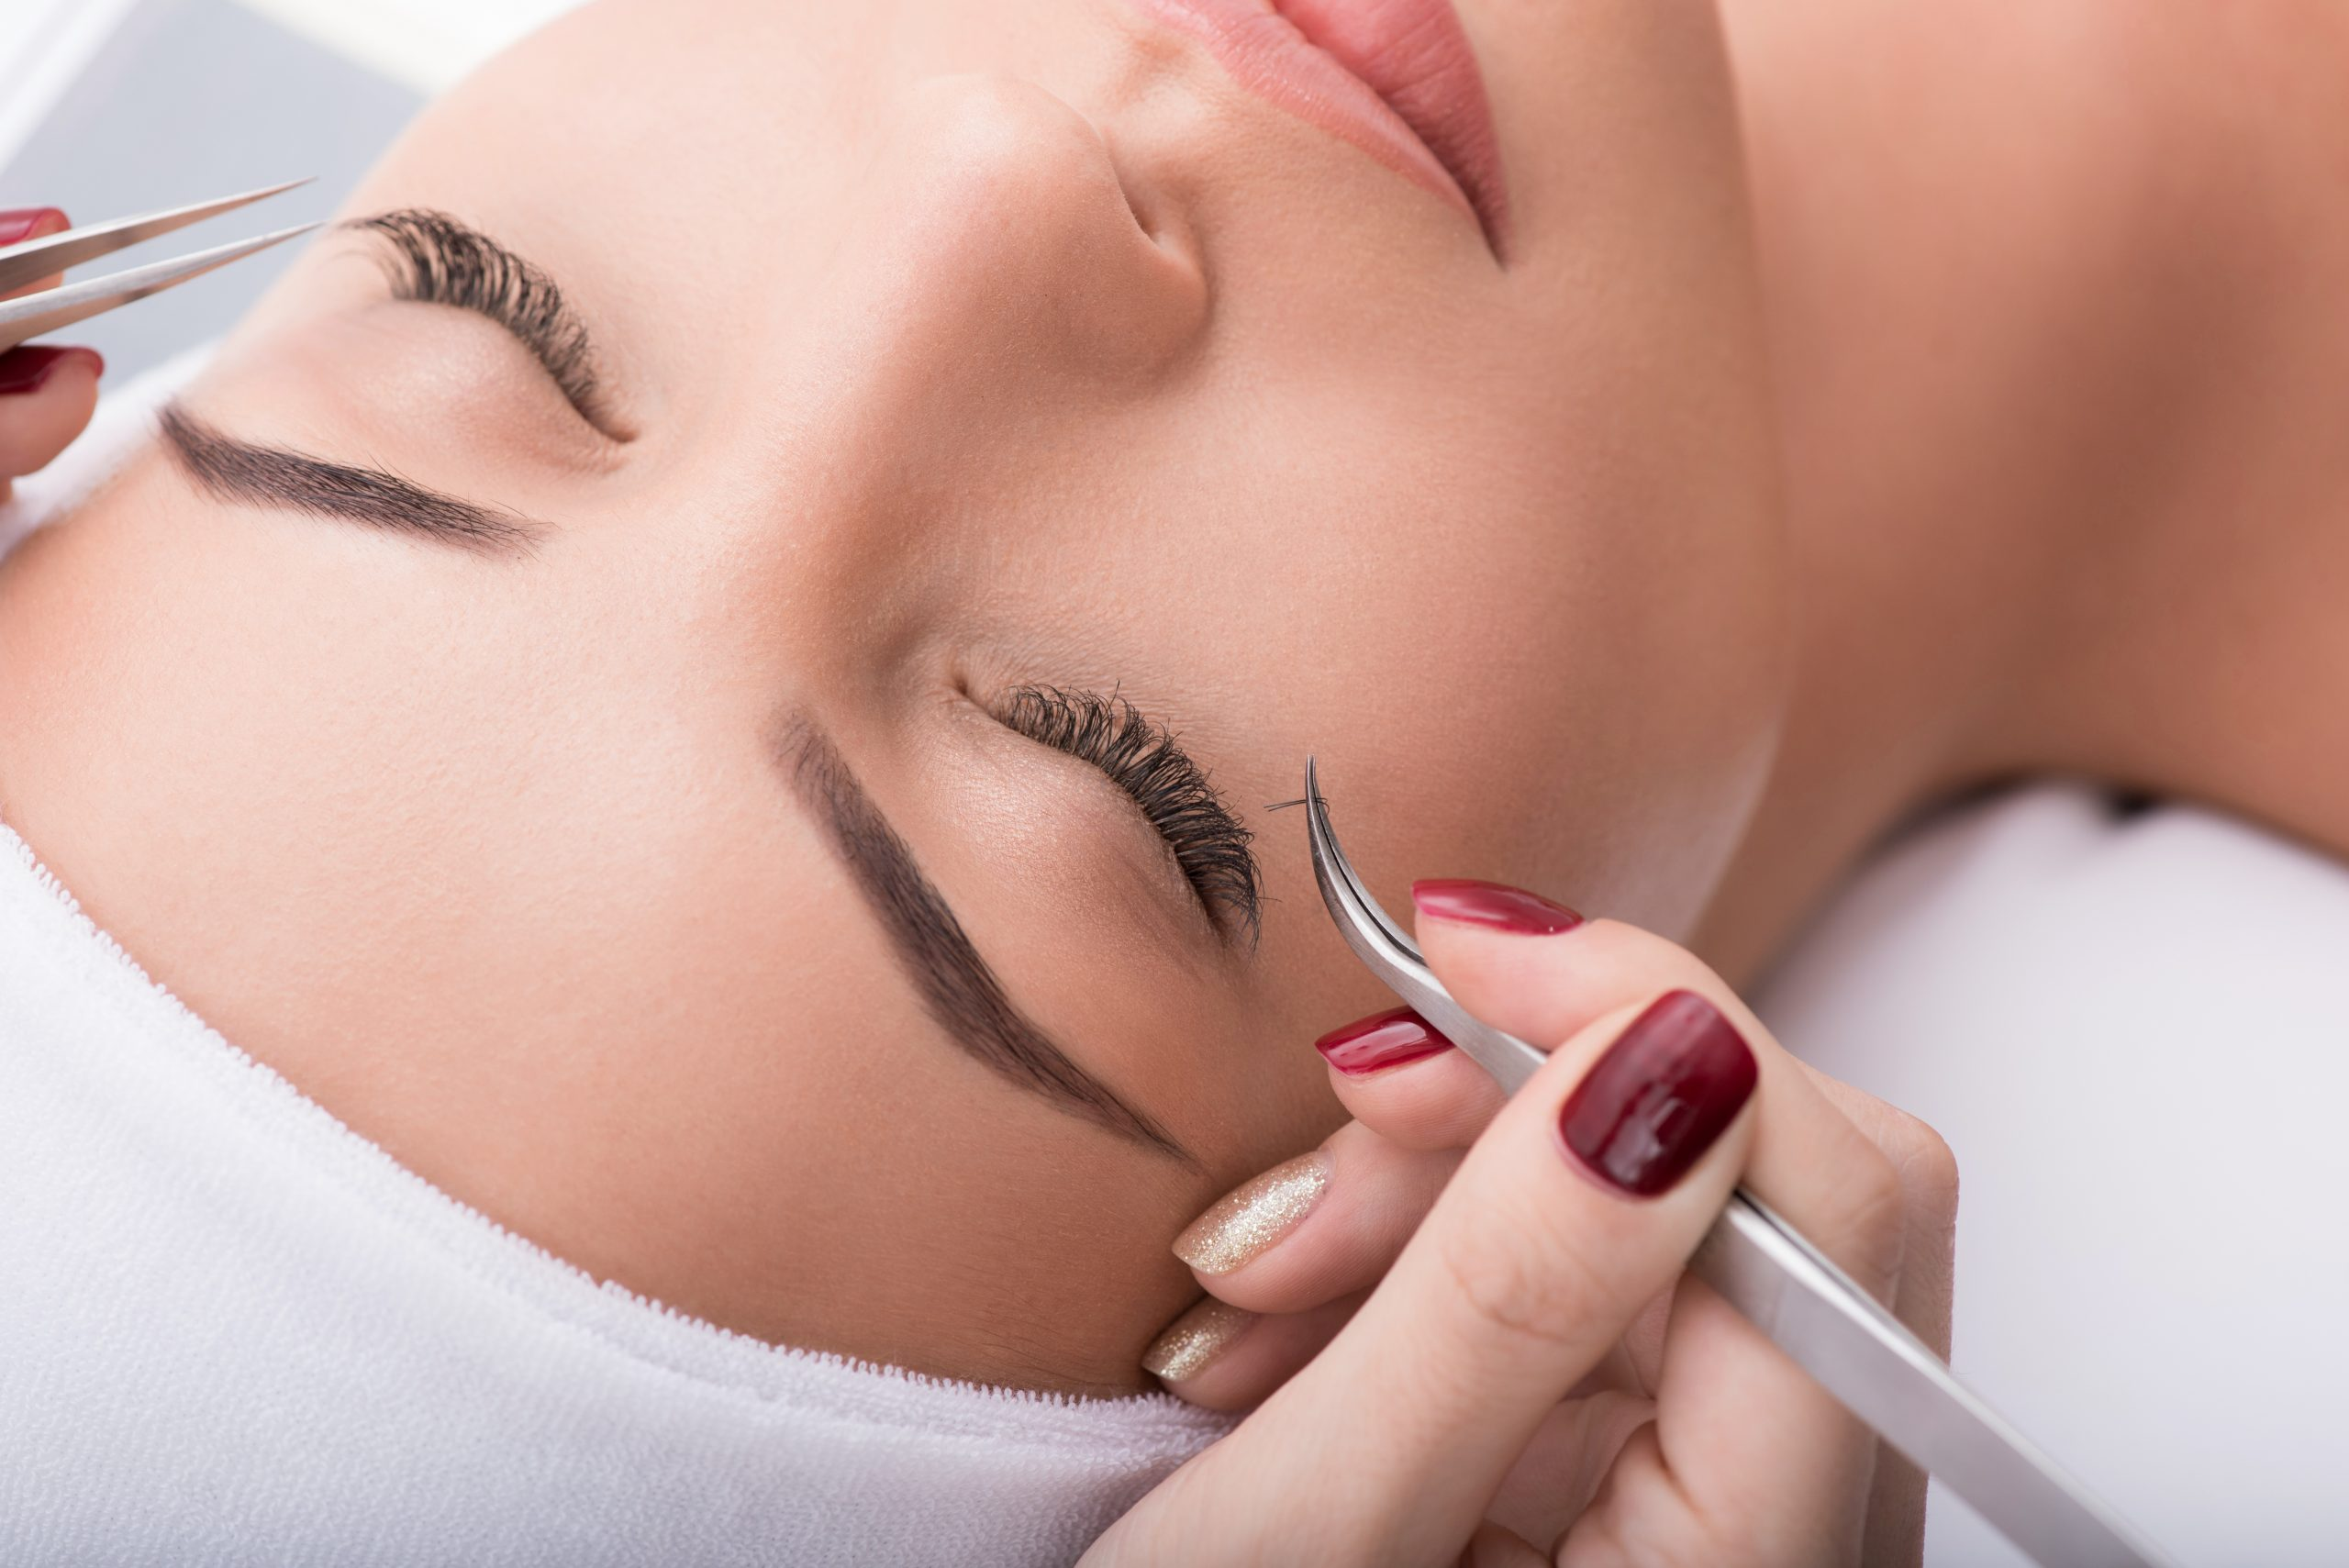 Close up of female face. Beautician building up long artificial eyelashes for young woman